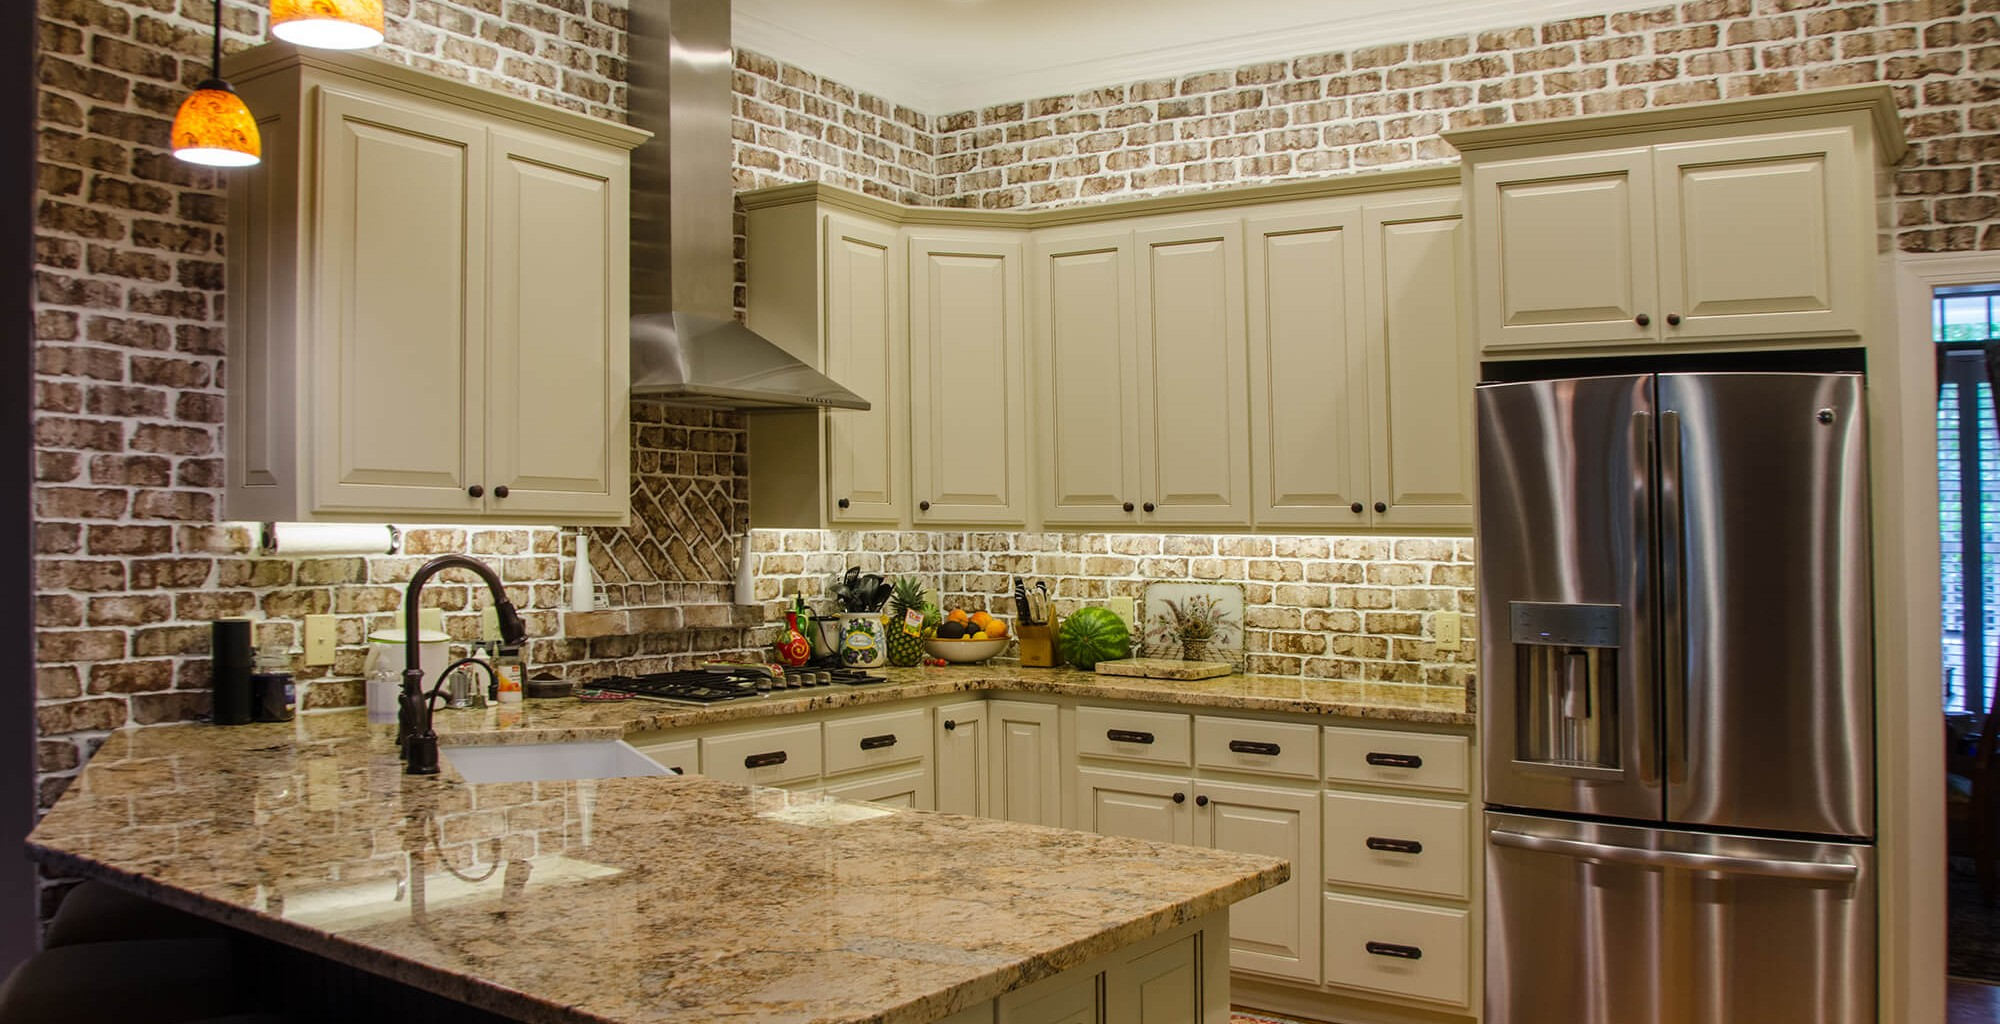 Raleigh NC Home Remodeling Contractor | Blue Ribbon Construction